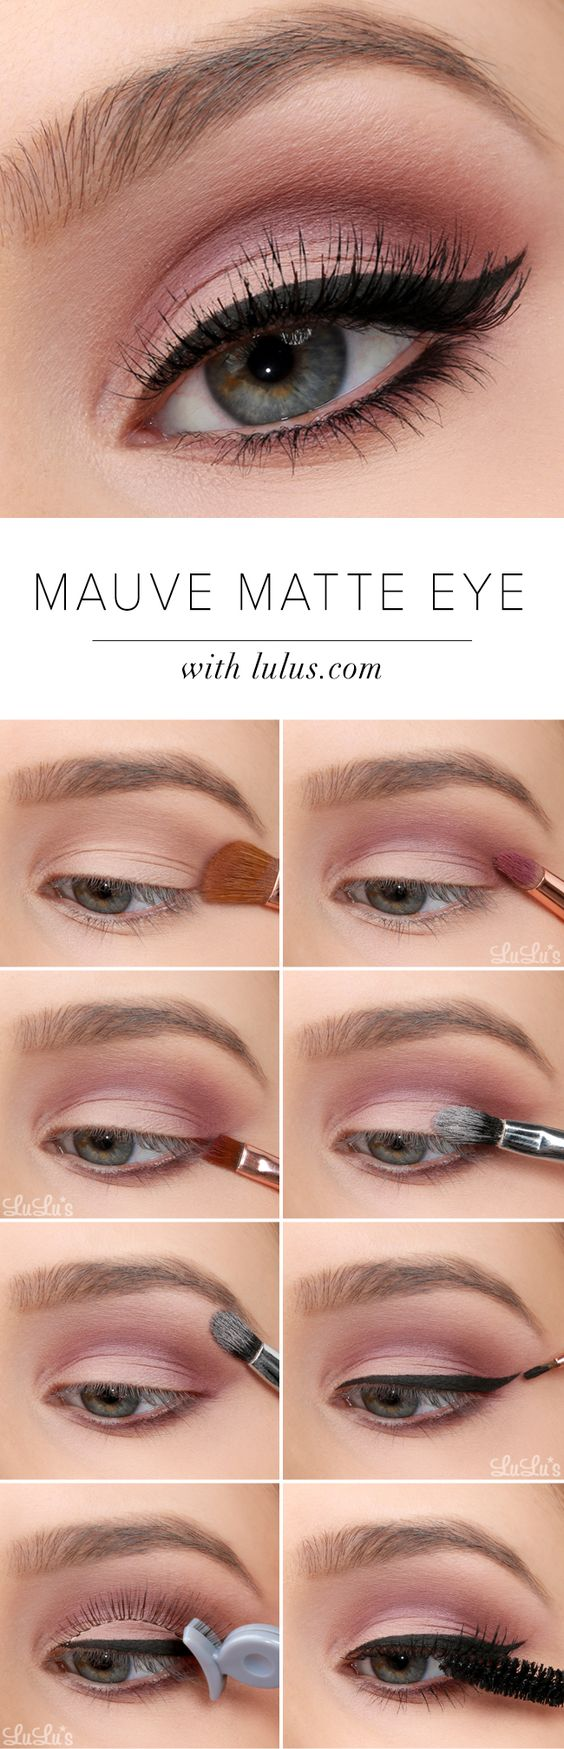 20 easy step by step eyeshadow tutorials for beginners her style code step by step eyeshadow tutorials baditri Gallery